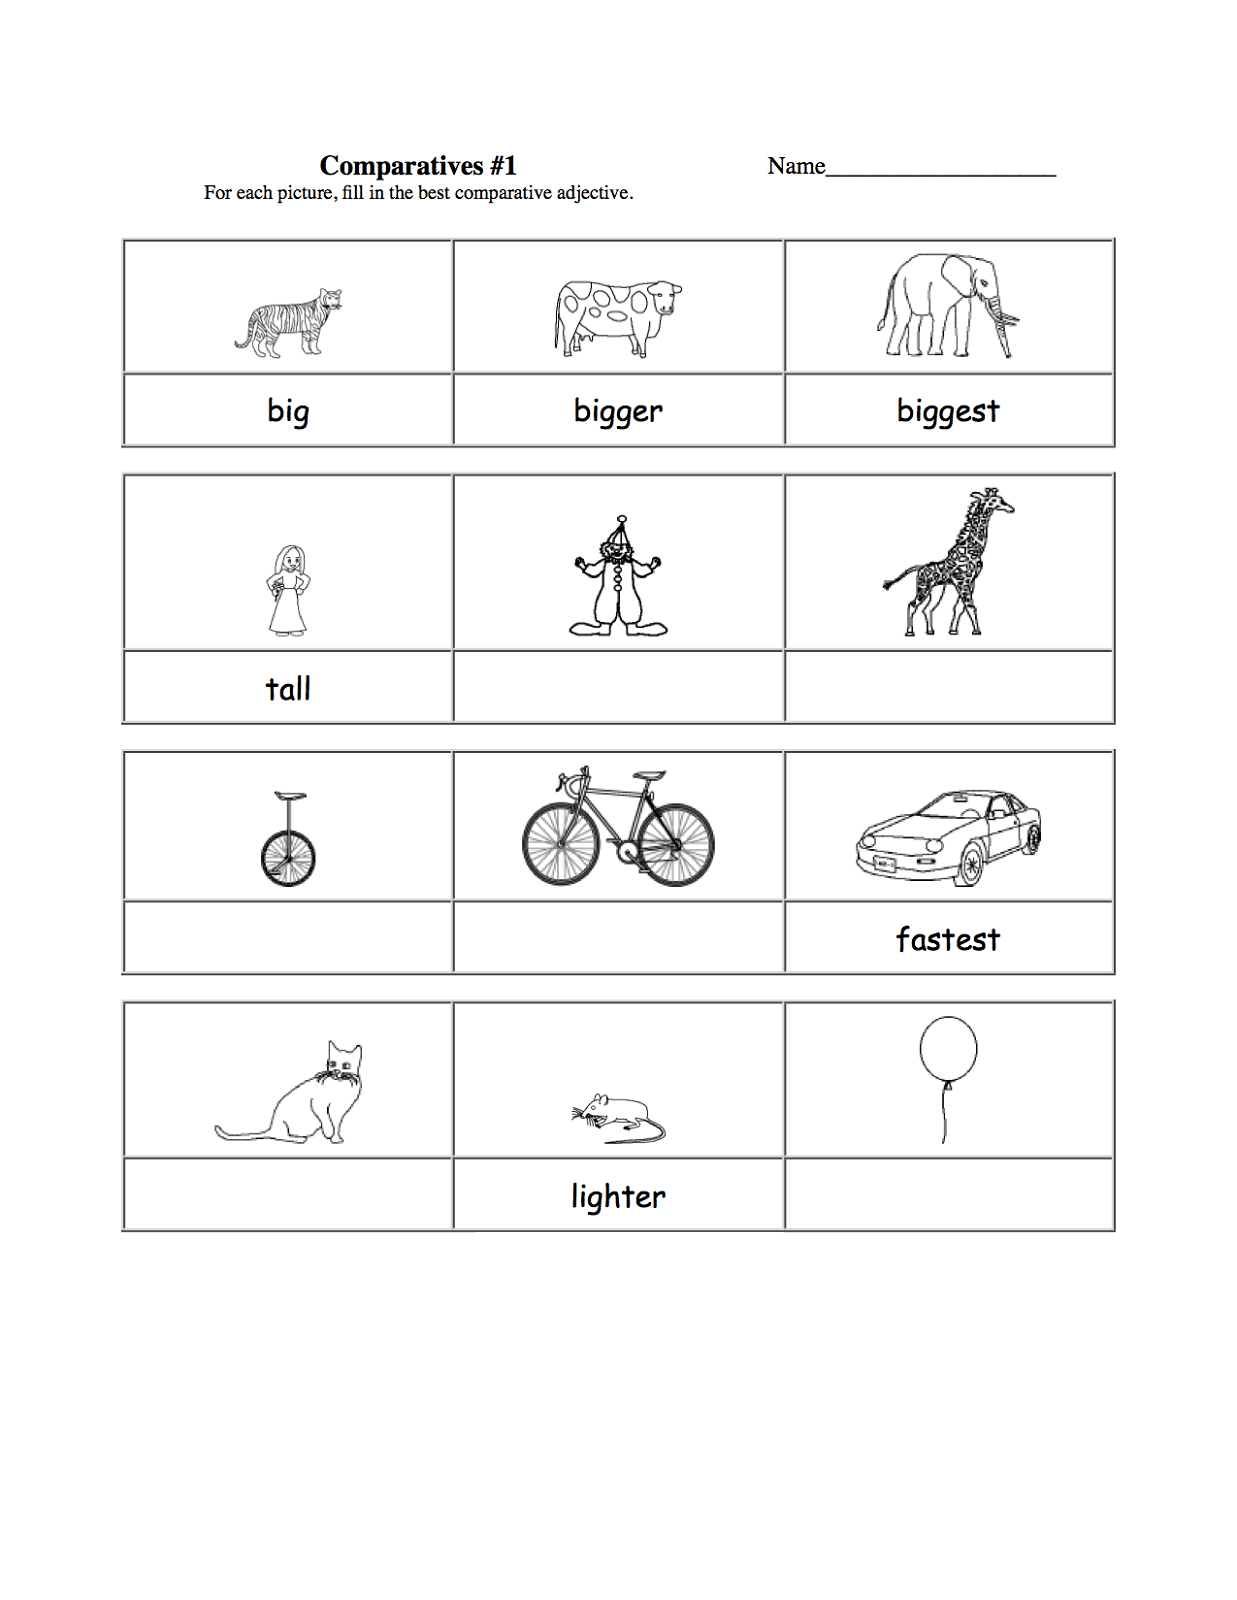 Worksheets for 5 years old kids activity shelter worksheets for 5 year olds comparison robcynllc Images